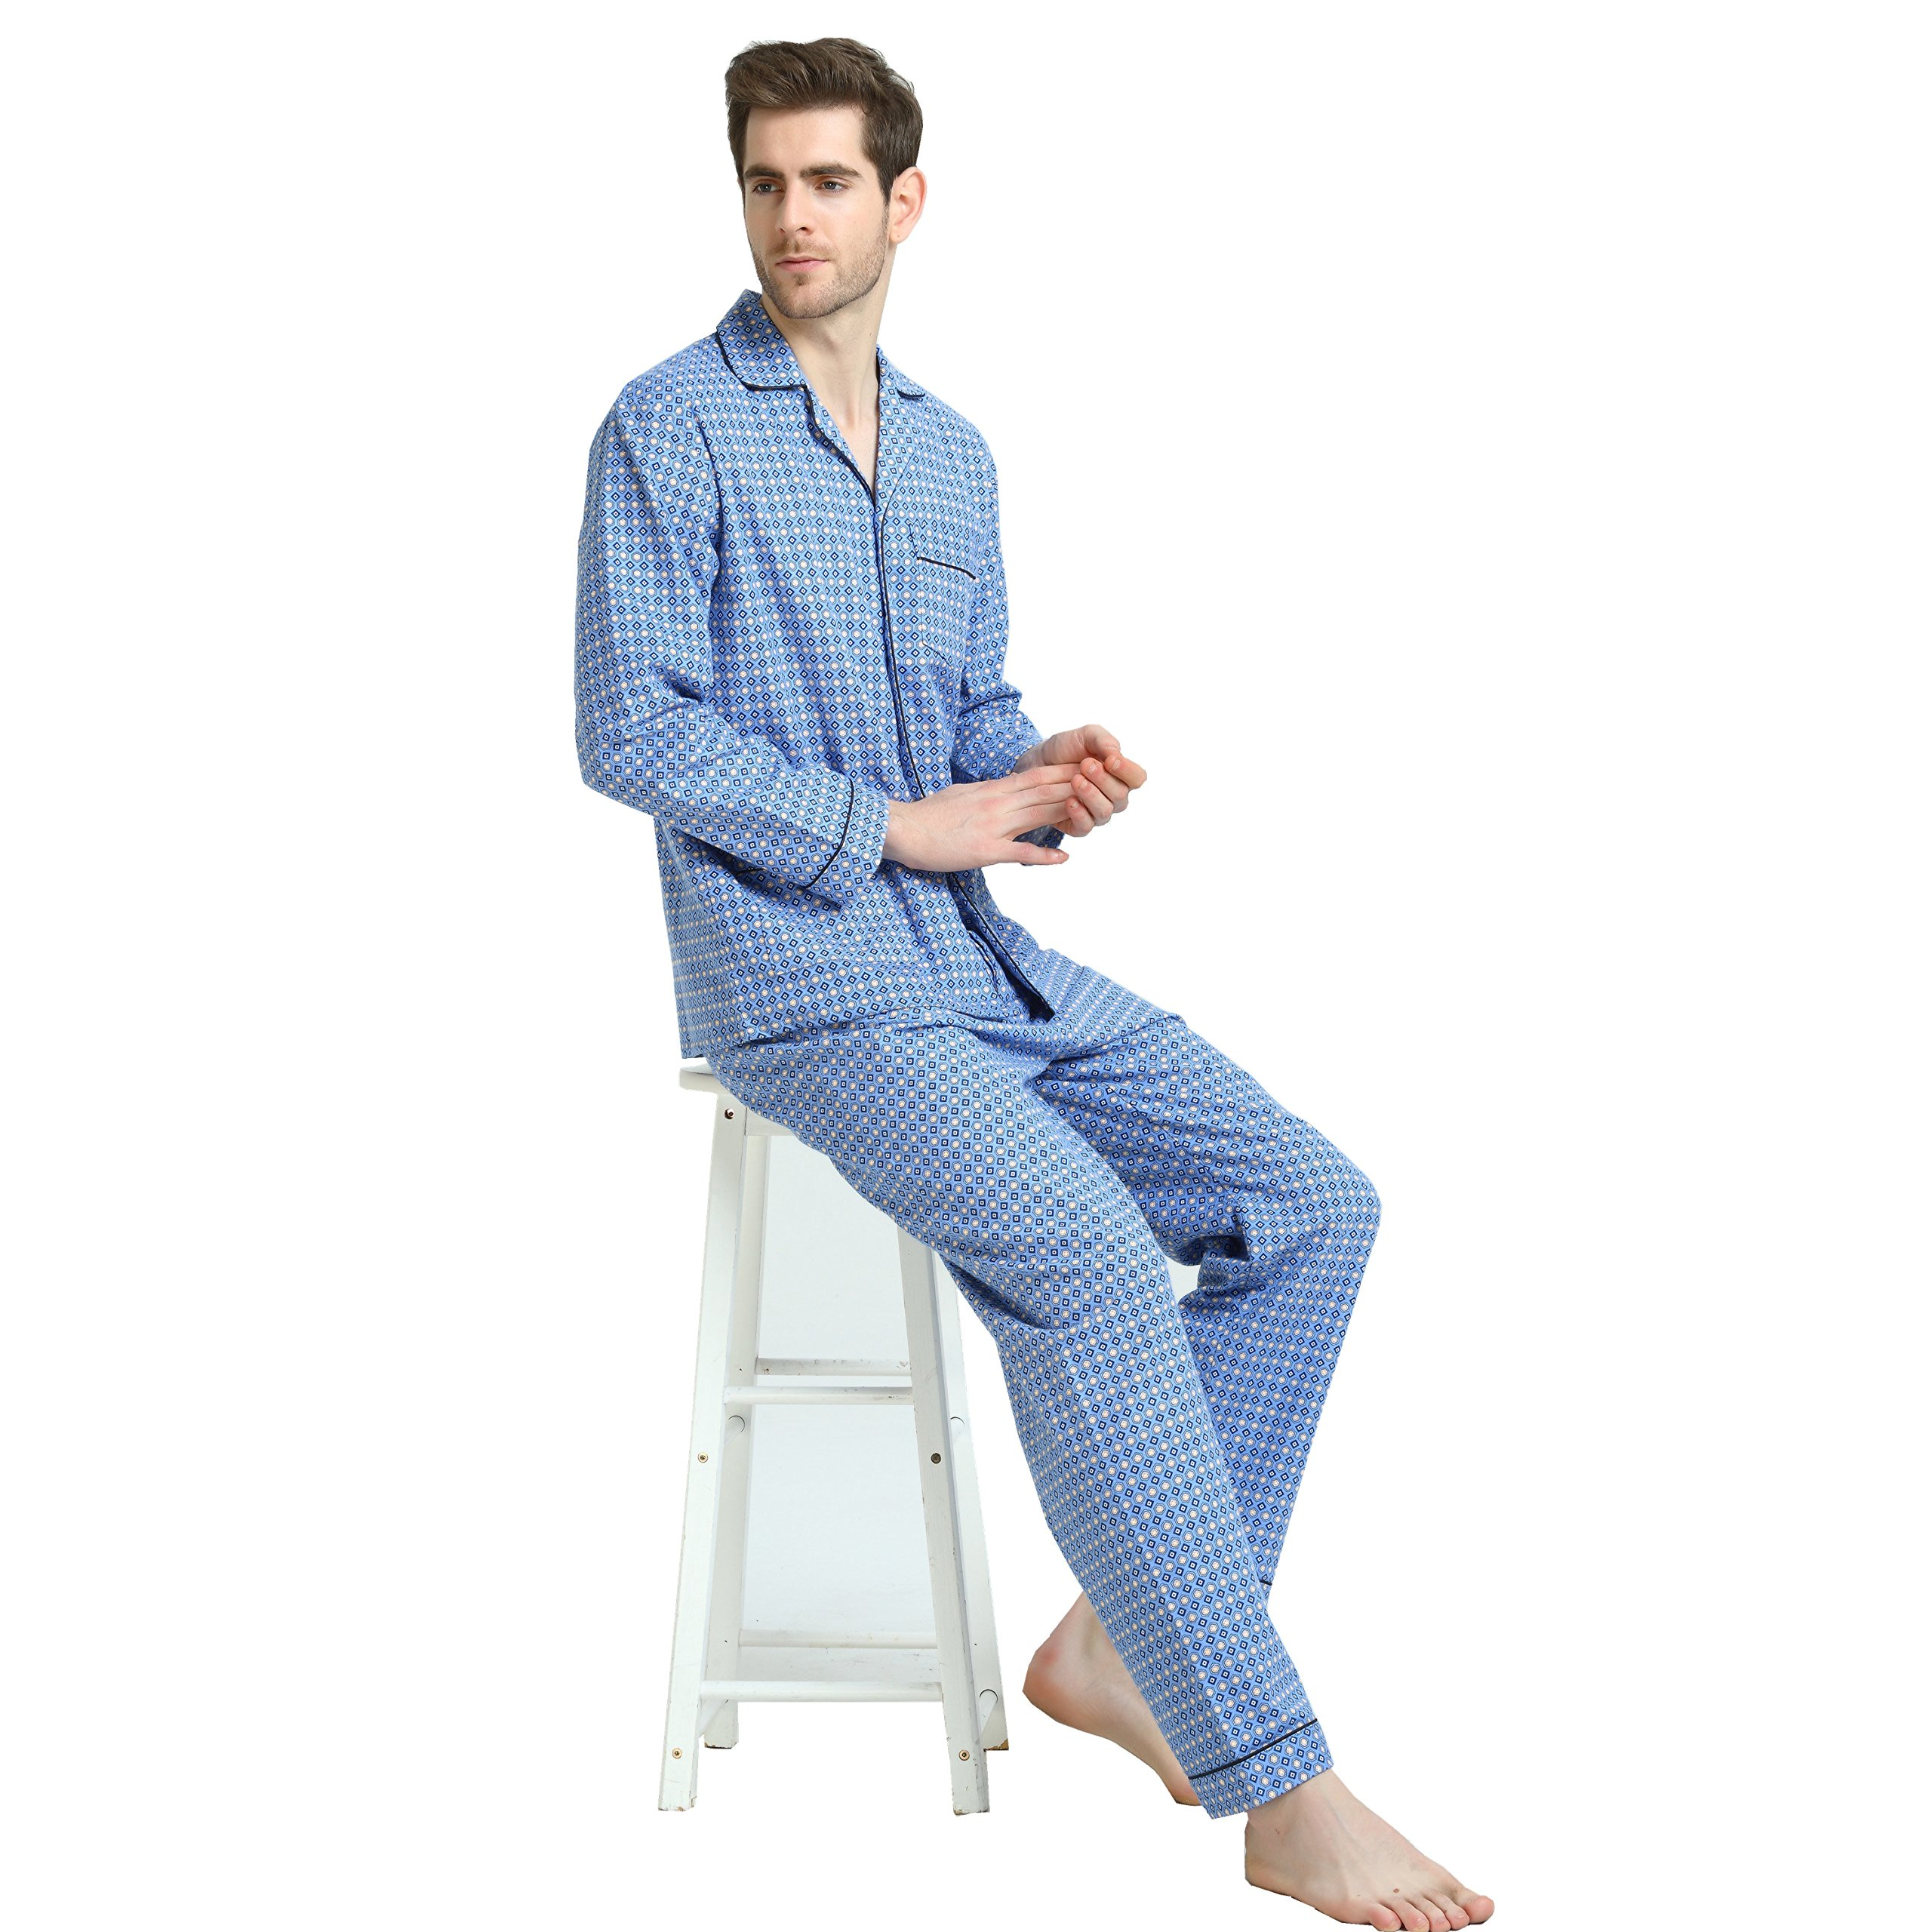 Cotton Sleepwear/Loungewear Sets for Men,100% Fleece Warm Pj Top and Bottom by GLOBAL (Image #6)